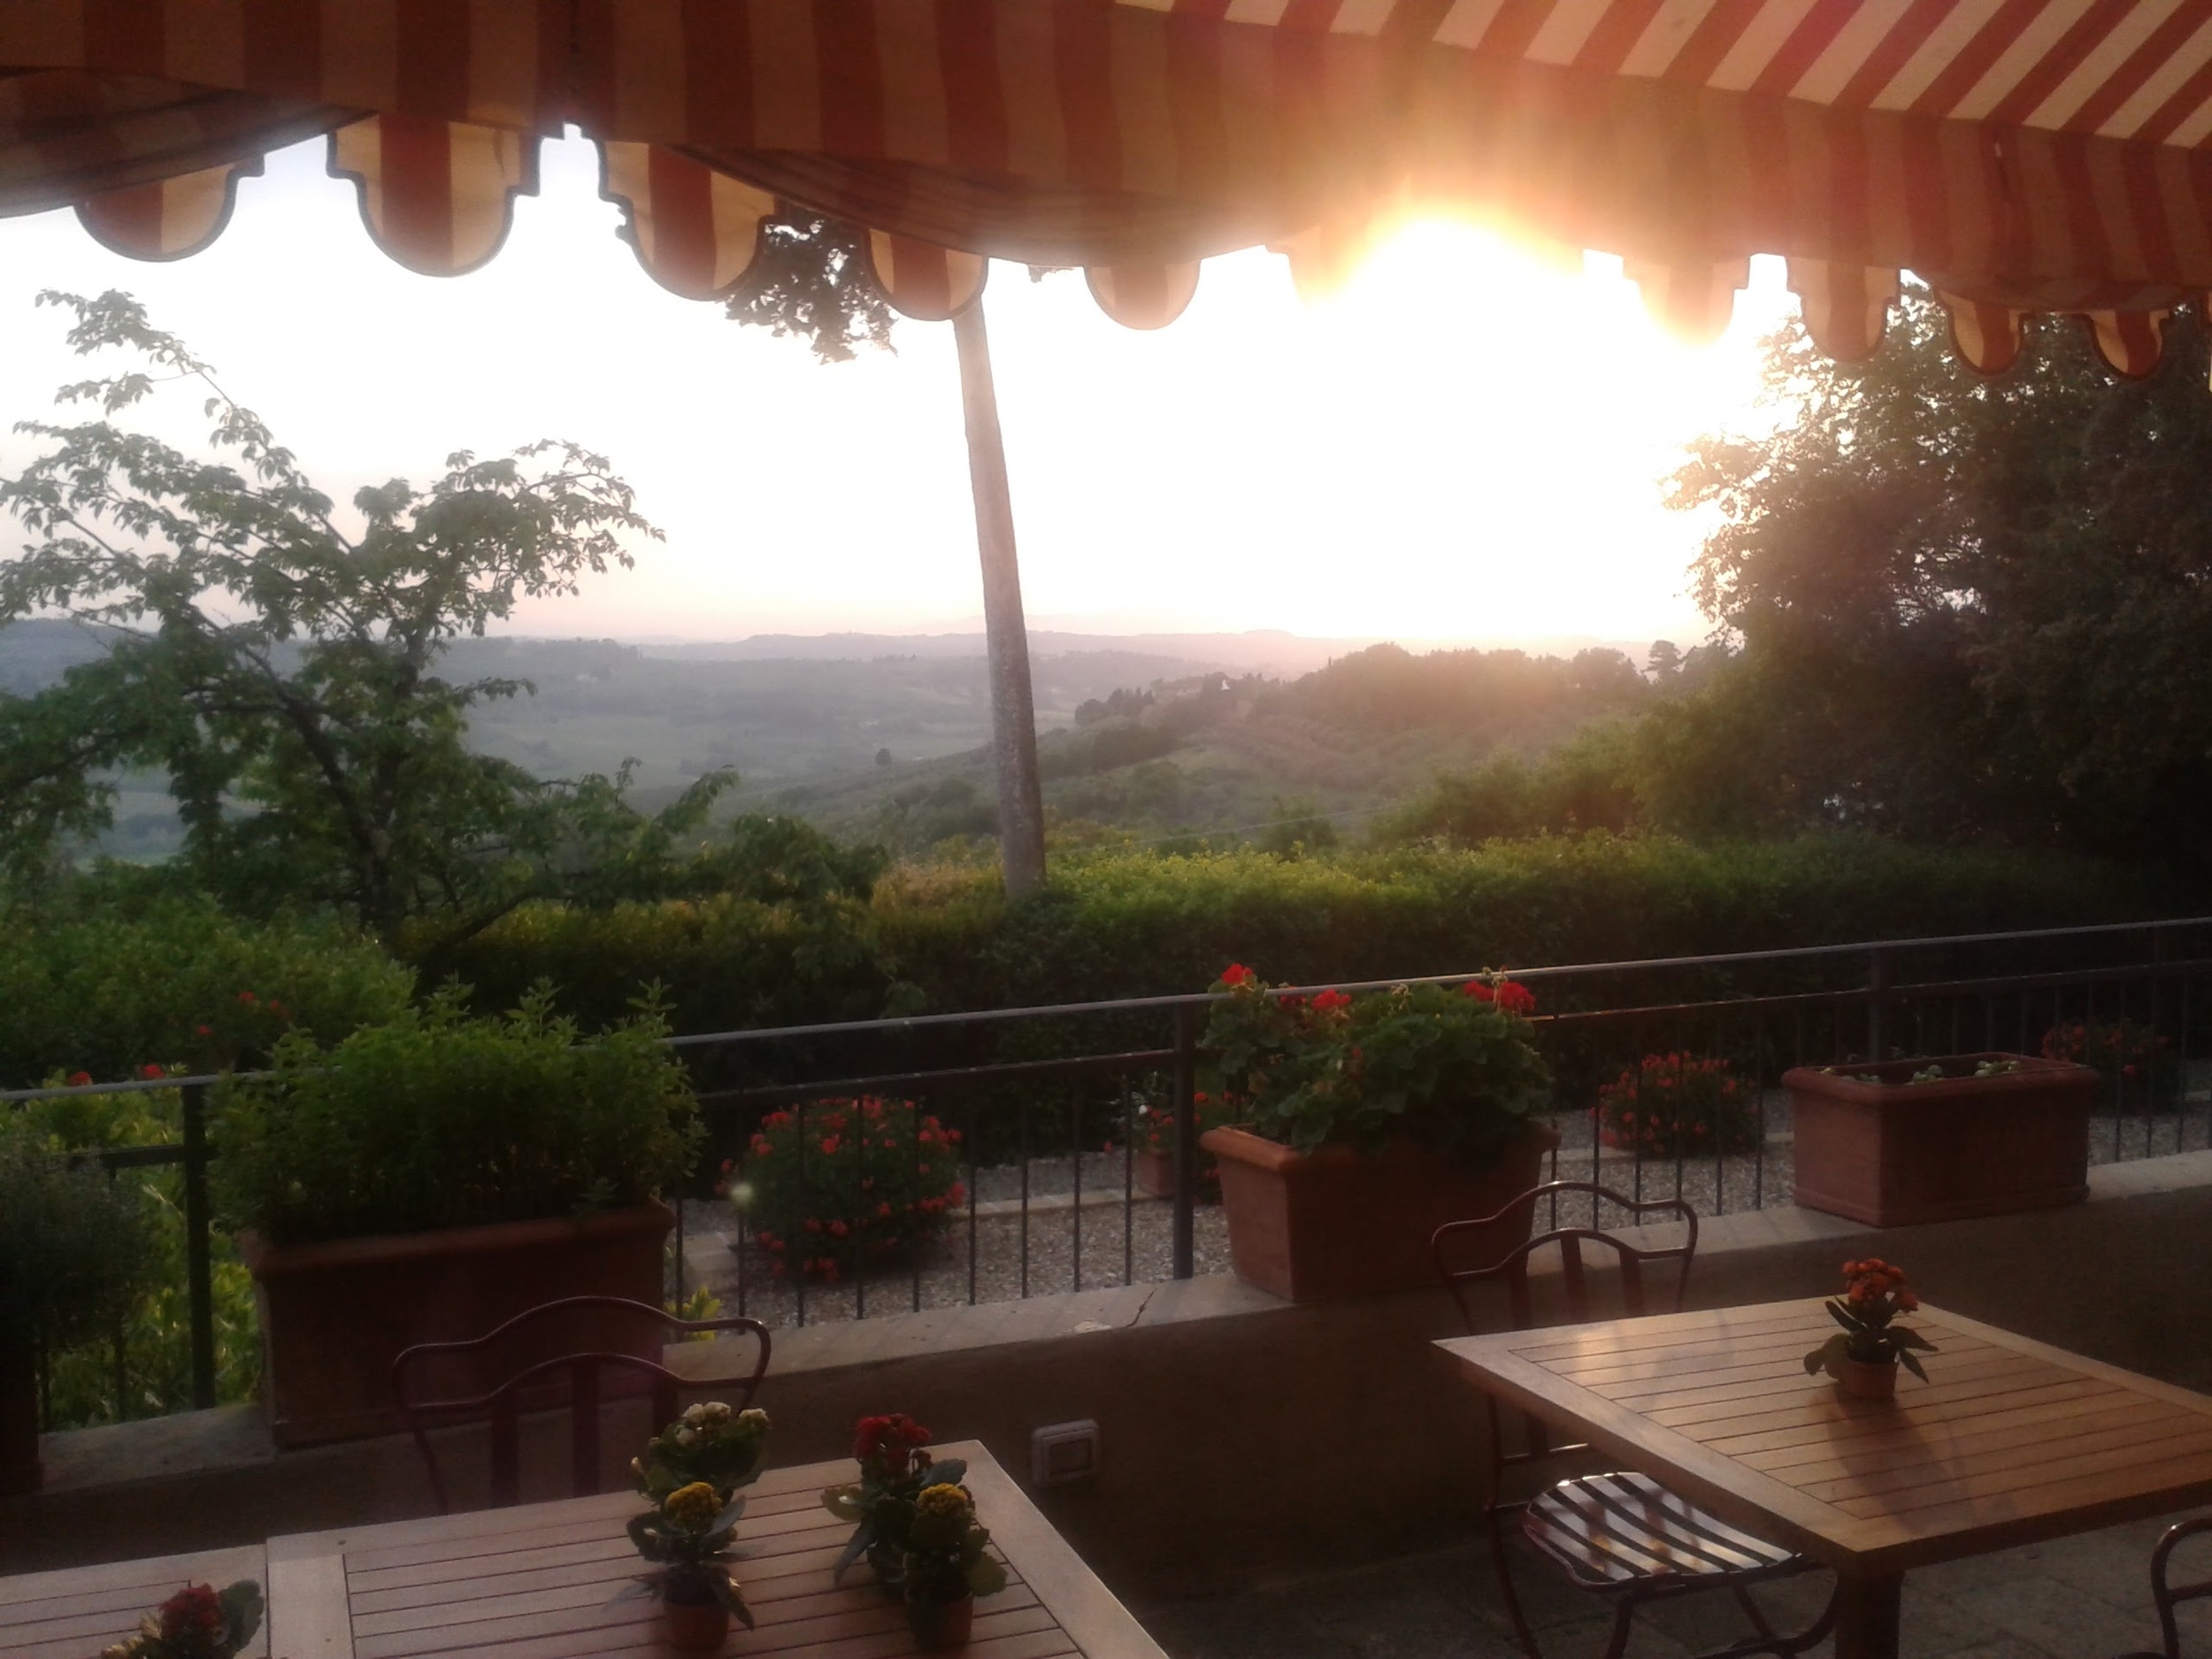 Sunset in the outside dining room of our Tuscan Villa